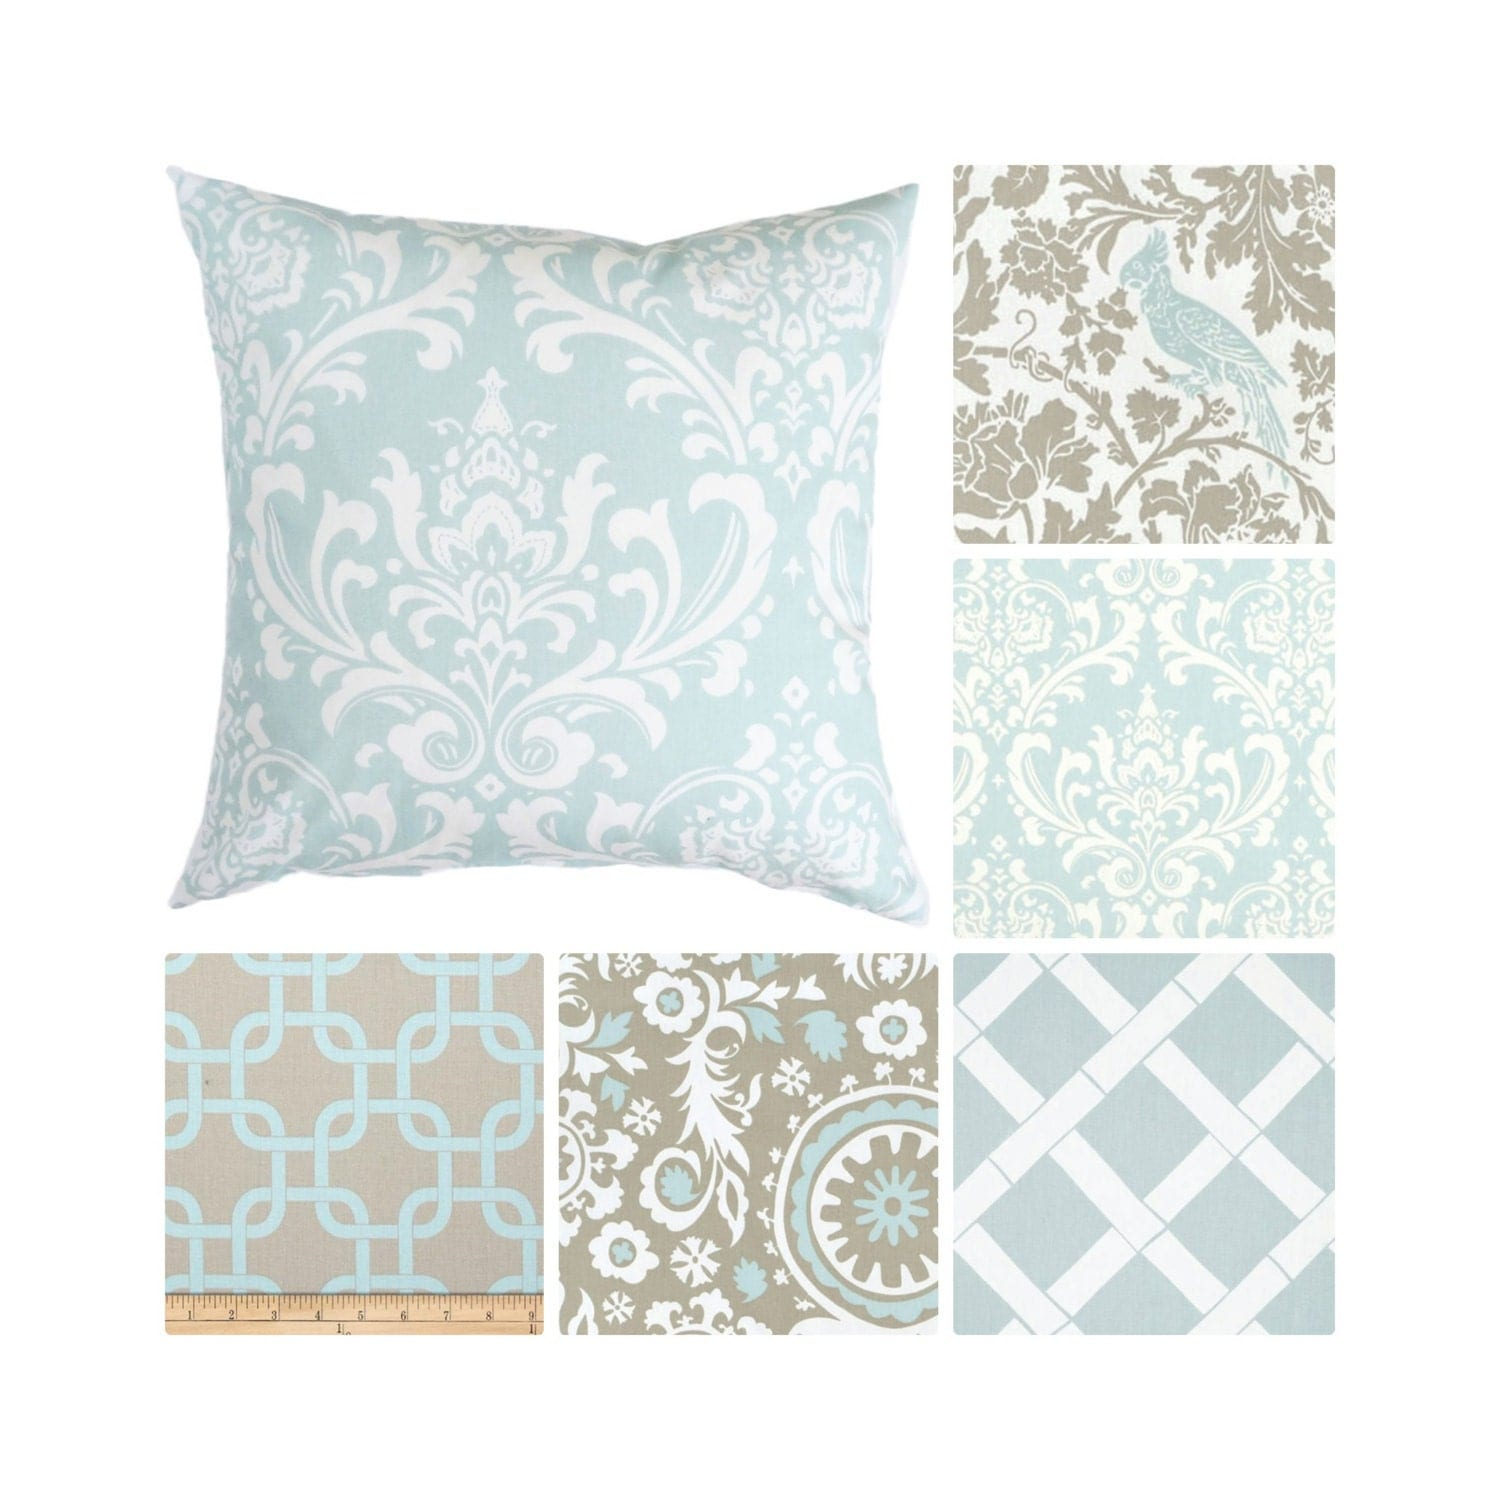 Powder Blue Decorative Pillows : Powder Blue Pillow Covers.Taupe Accent Pillows.Light Blue